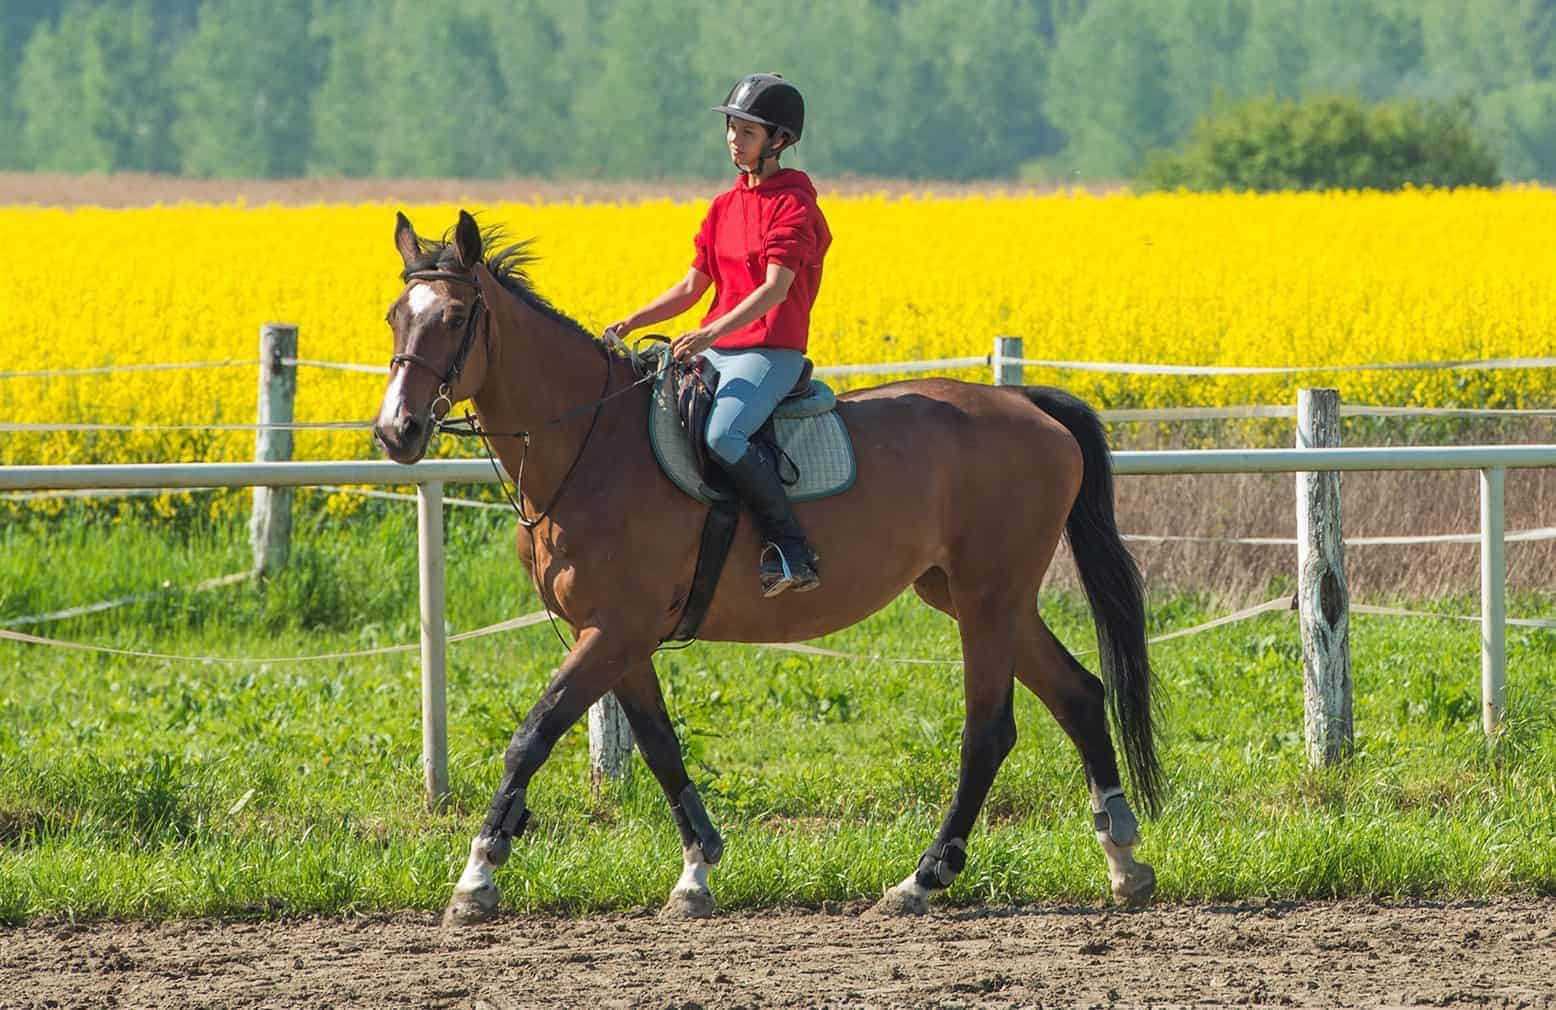 Warming Up Horses When Riding: Why and How